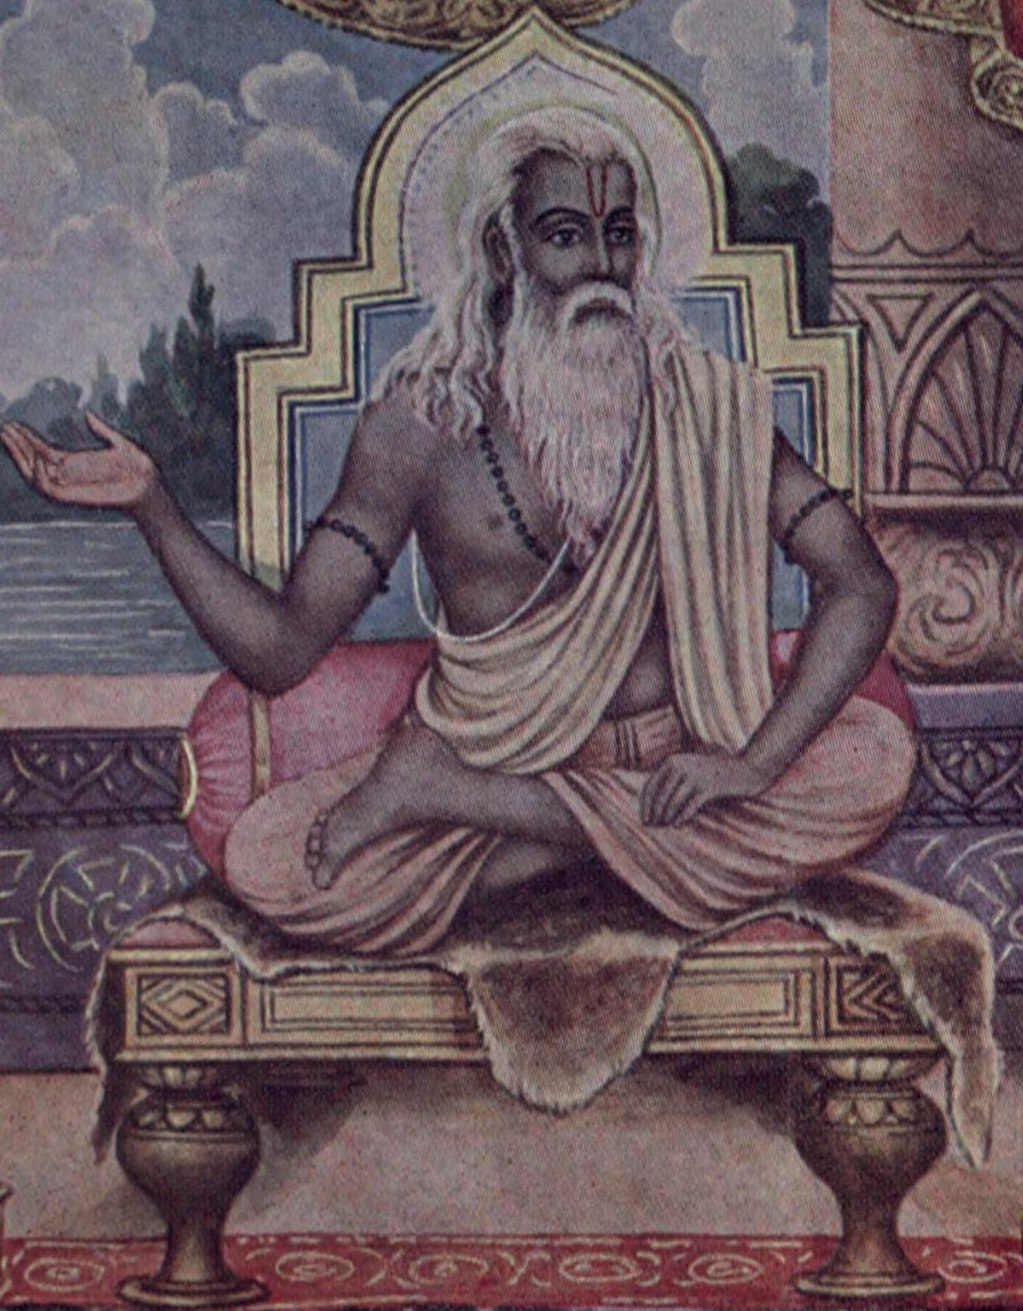 A portrayal of Vyasa, who classified the Vedas...